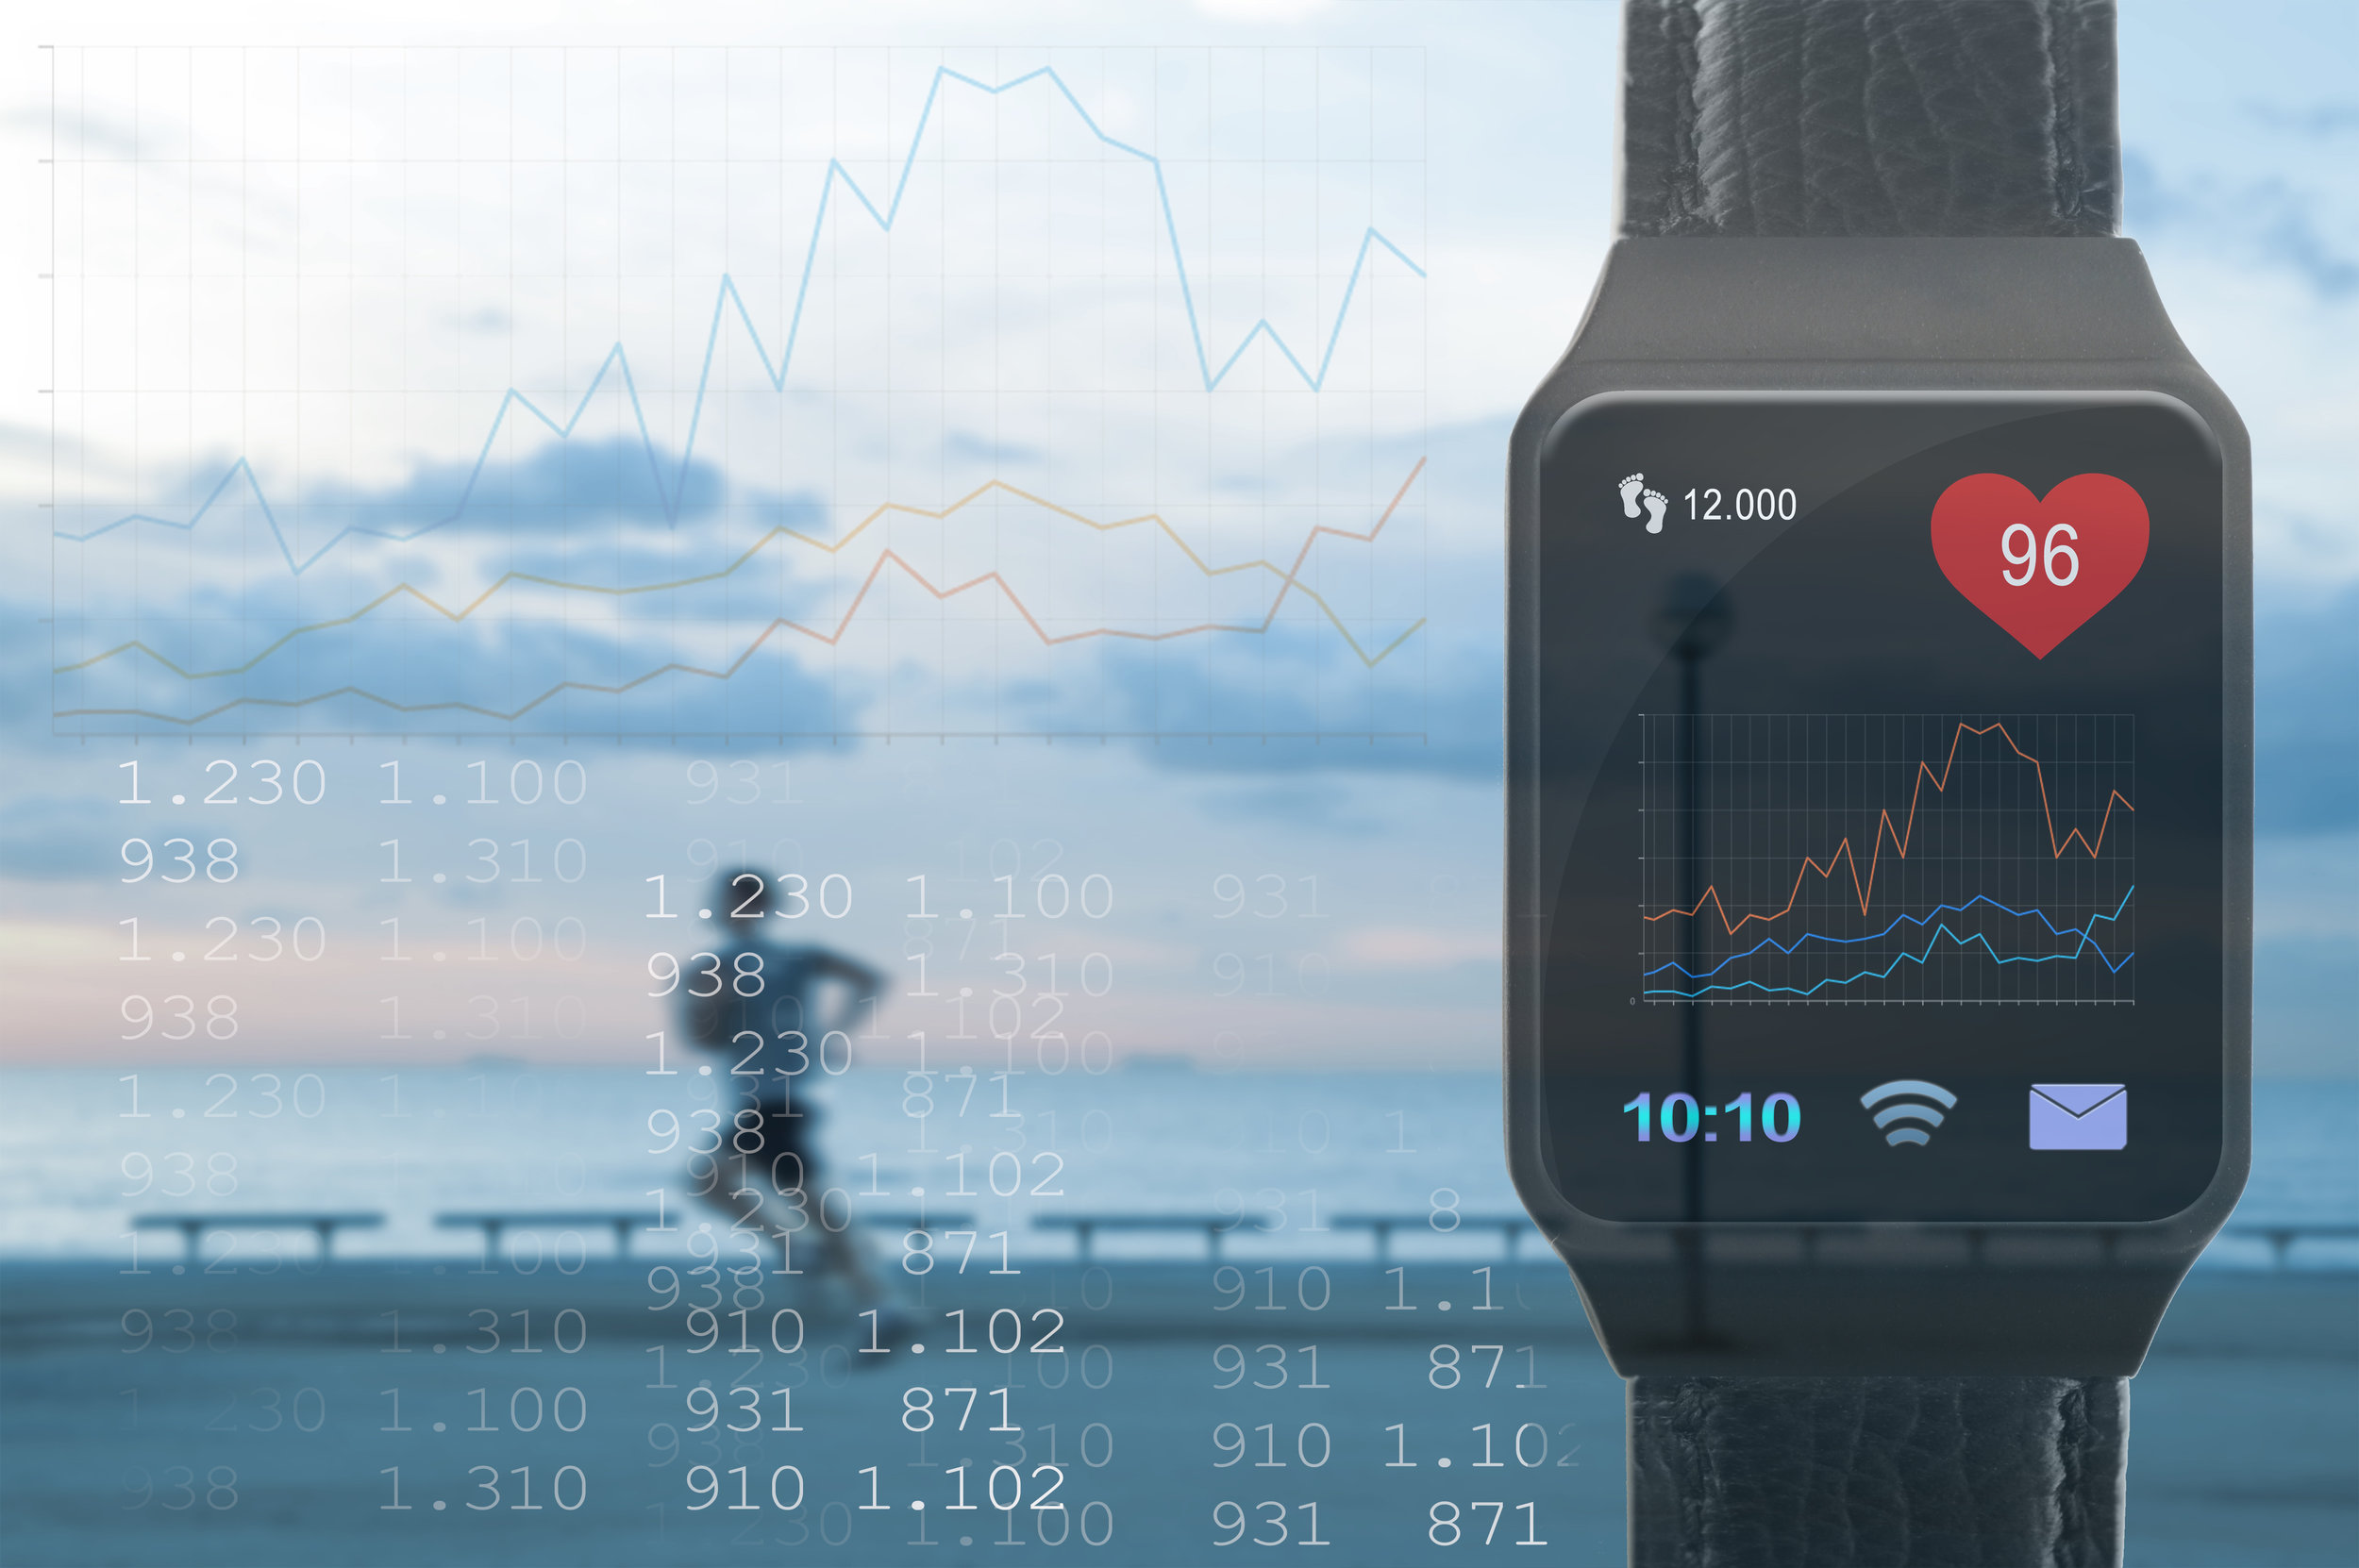 Digital Health    With the proliferation of wearable devices and data, we have helped startups create custom AI based solutions that leverage discrete and continuous data from wearable devices and connected devices.